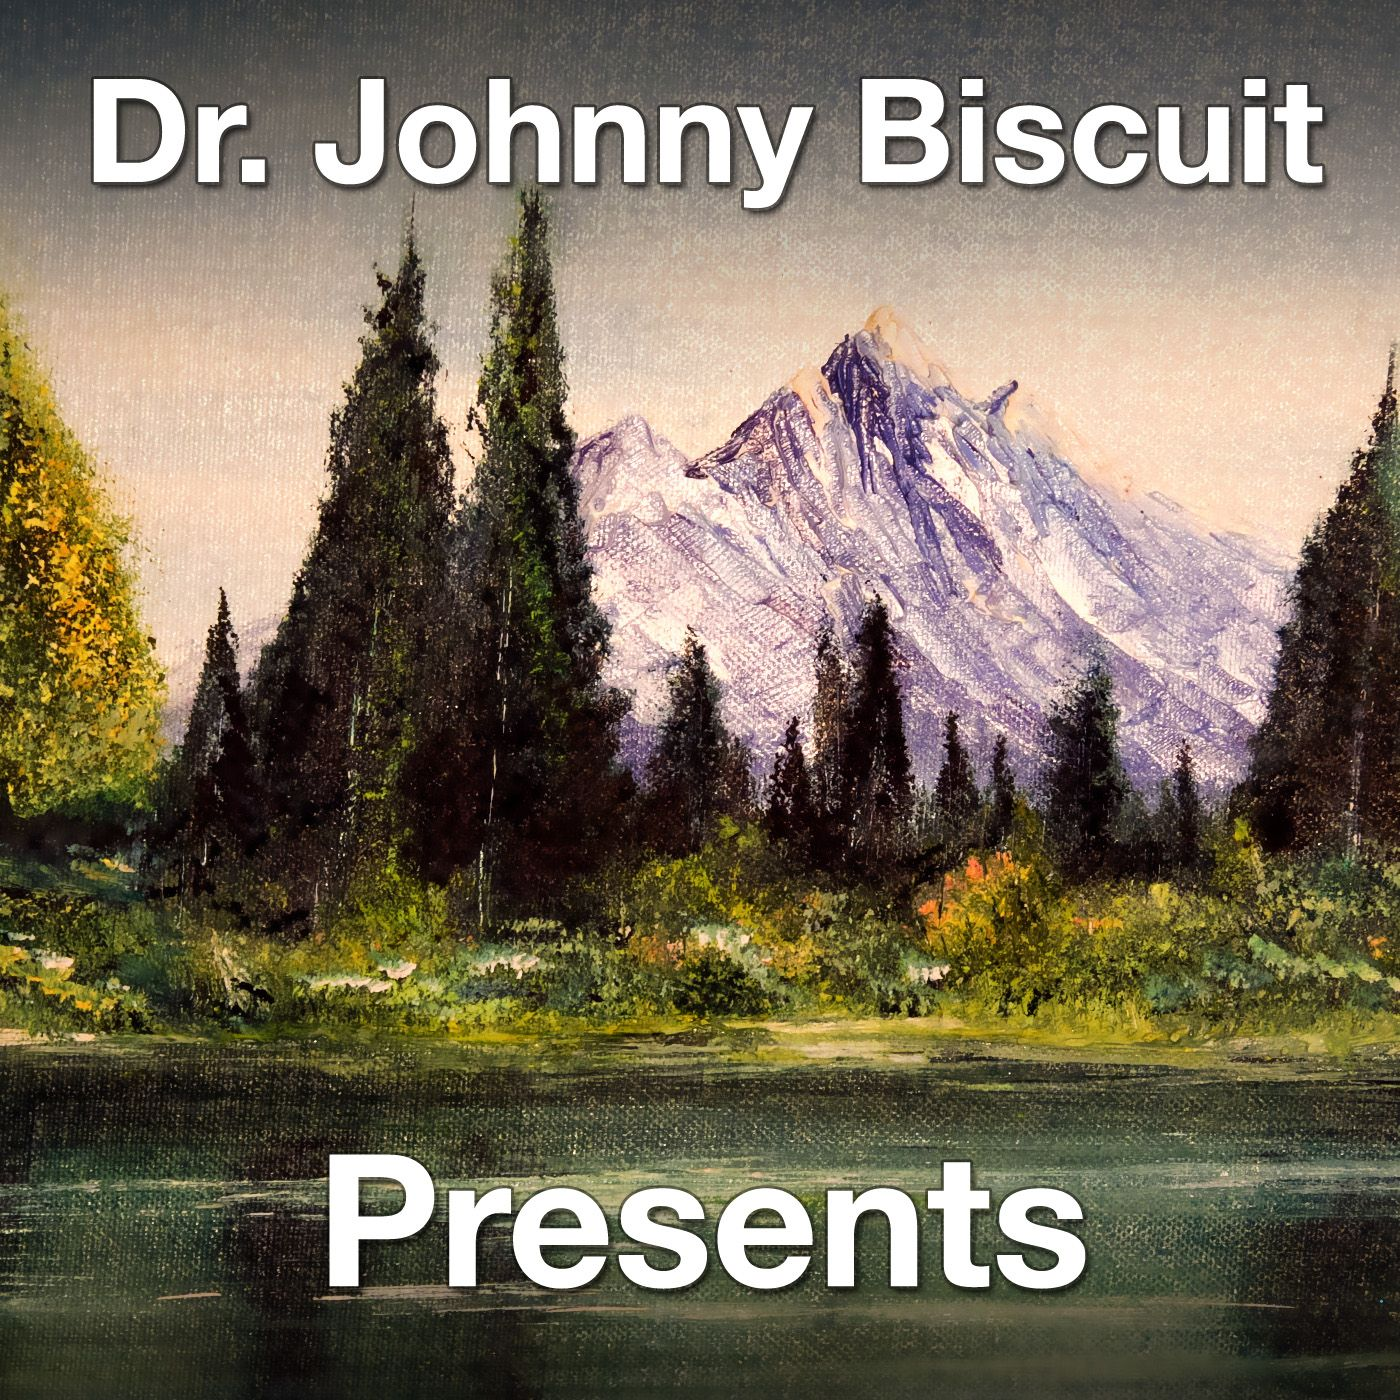 Dr. Johnny Biscuit Presents Episode 4: Lord Mesmer Eyes